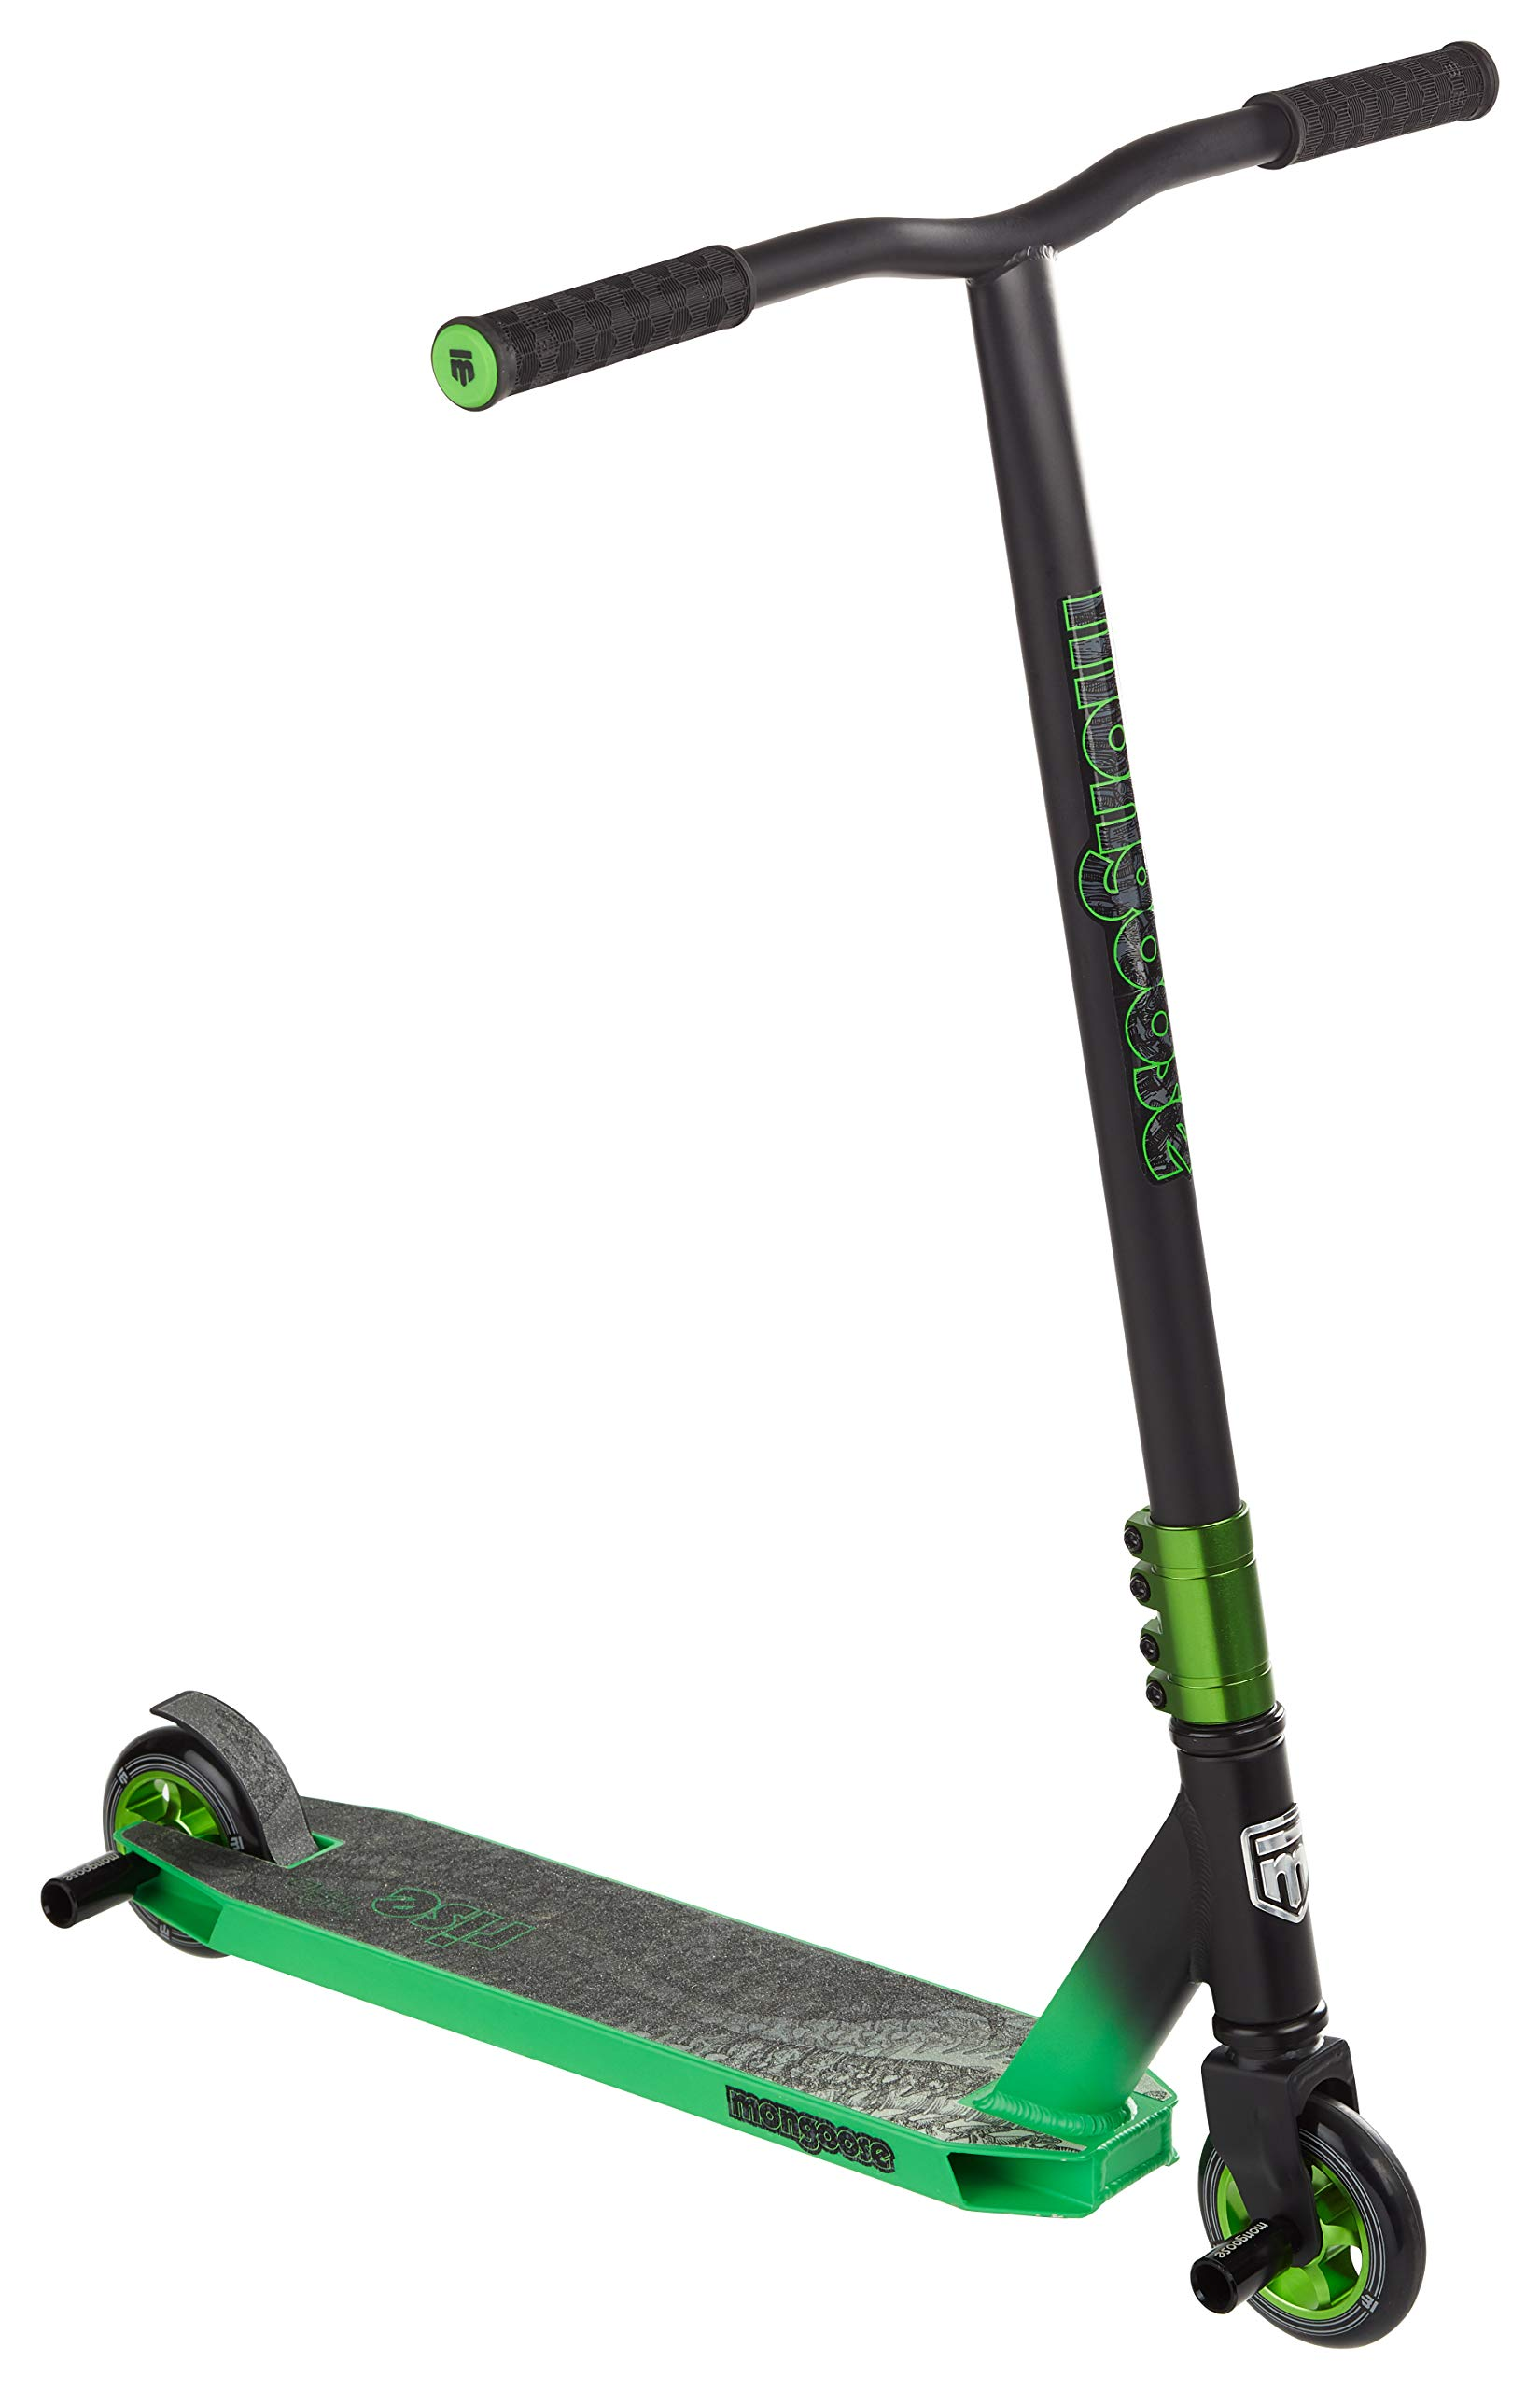 Mongoose Rise 100 Pro Freestyle Stunt Kick Scooter, Featuring Lightweight Alloy Deck with Full-Coverage Max Grip and Bike-Style Handlebars, Wheel Pegs Included, 100mm Alloy Wheels, Black/Green by Mongoose